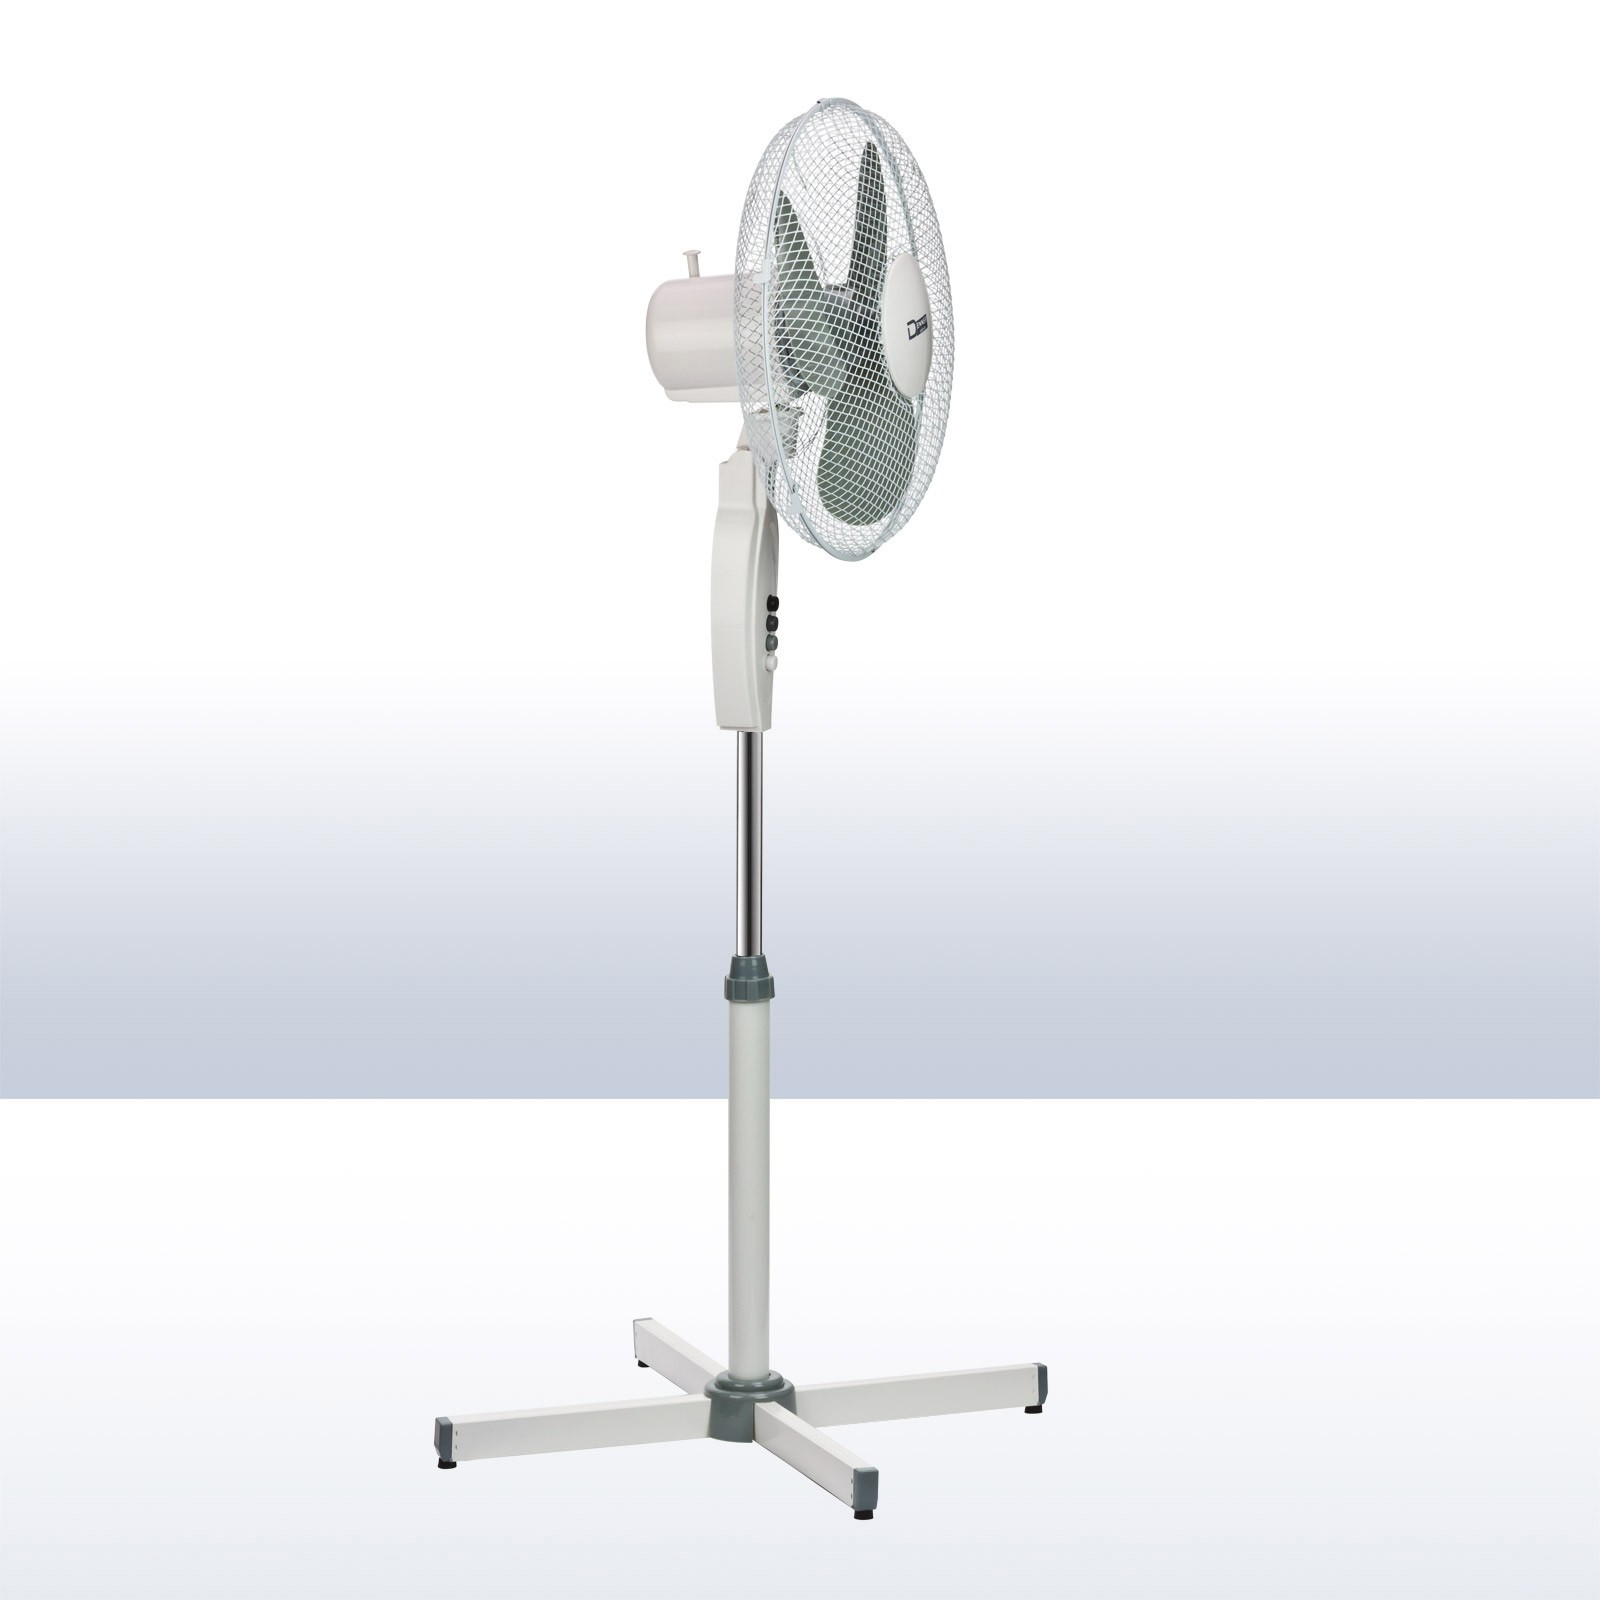 stand ventilator standventilator sv 45 cm hochwertig ger uscharm mit standfu ebay. Black Bedroom Furniture Sets. Home Design Ideas